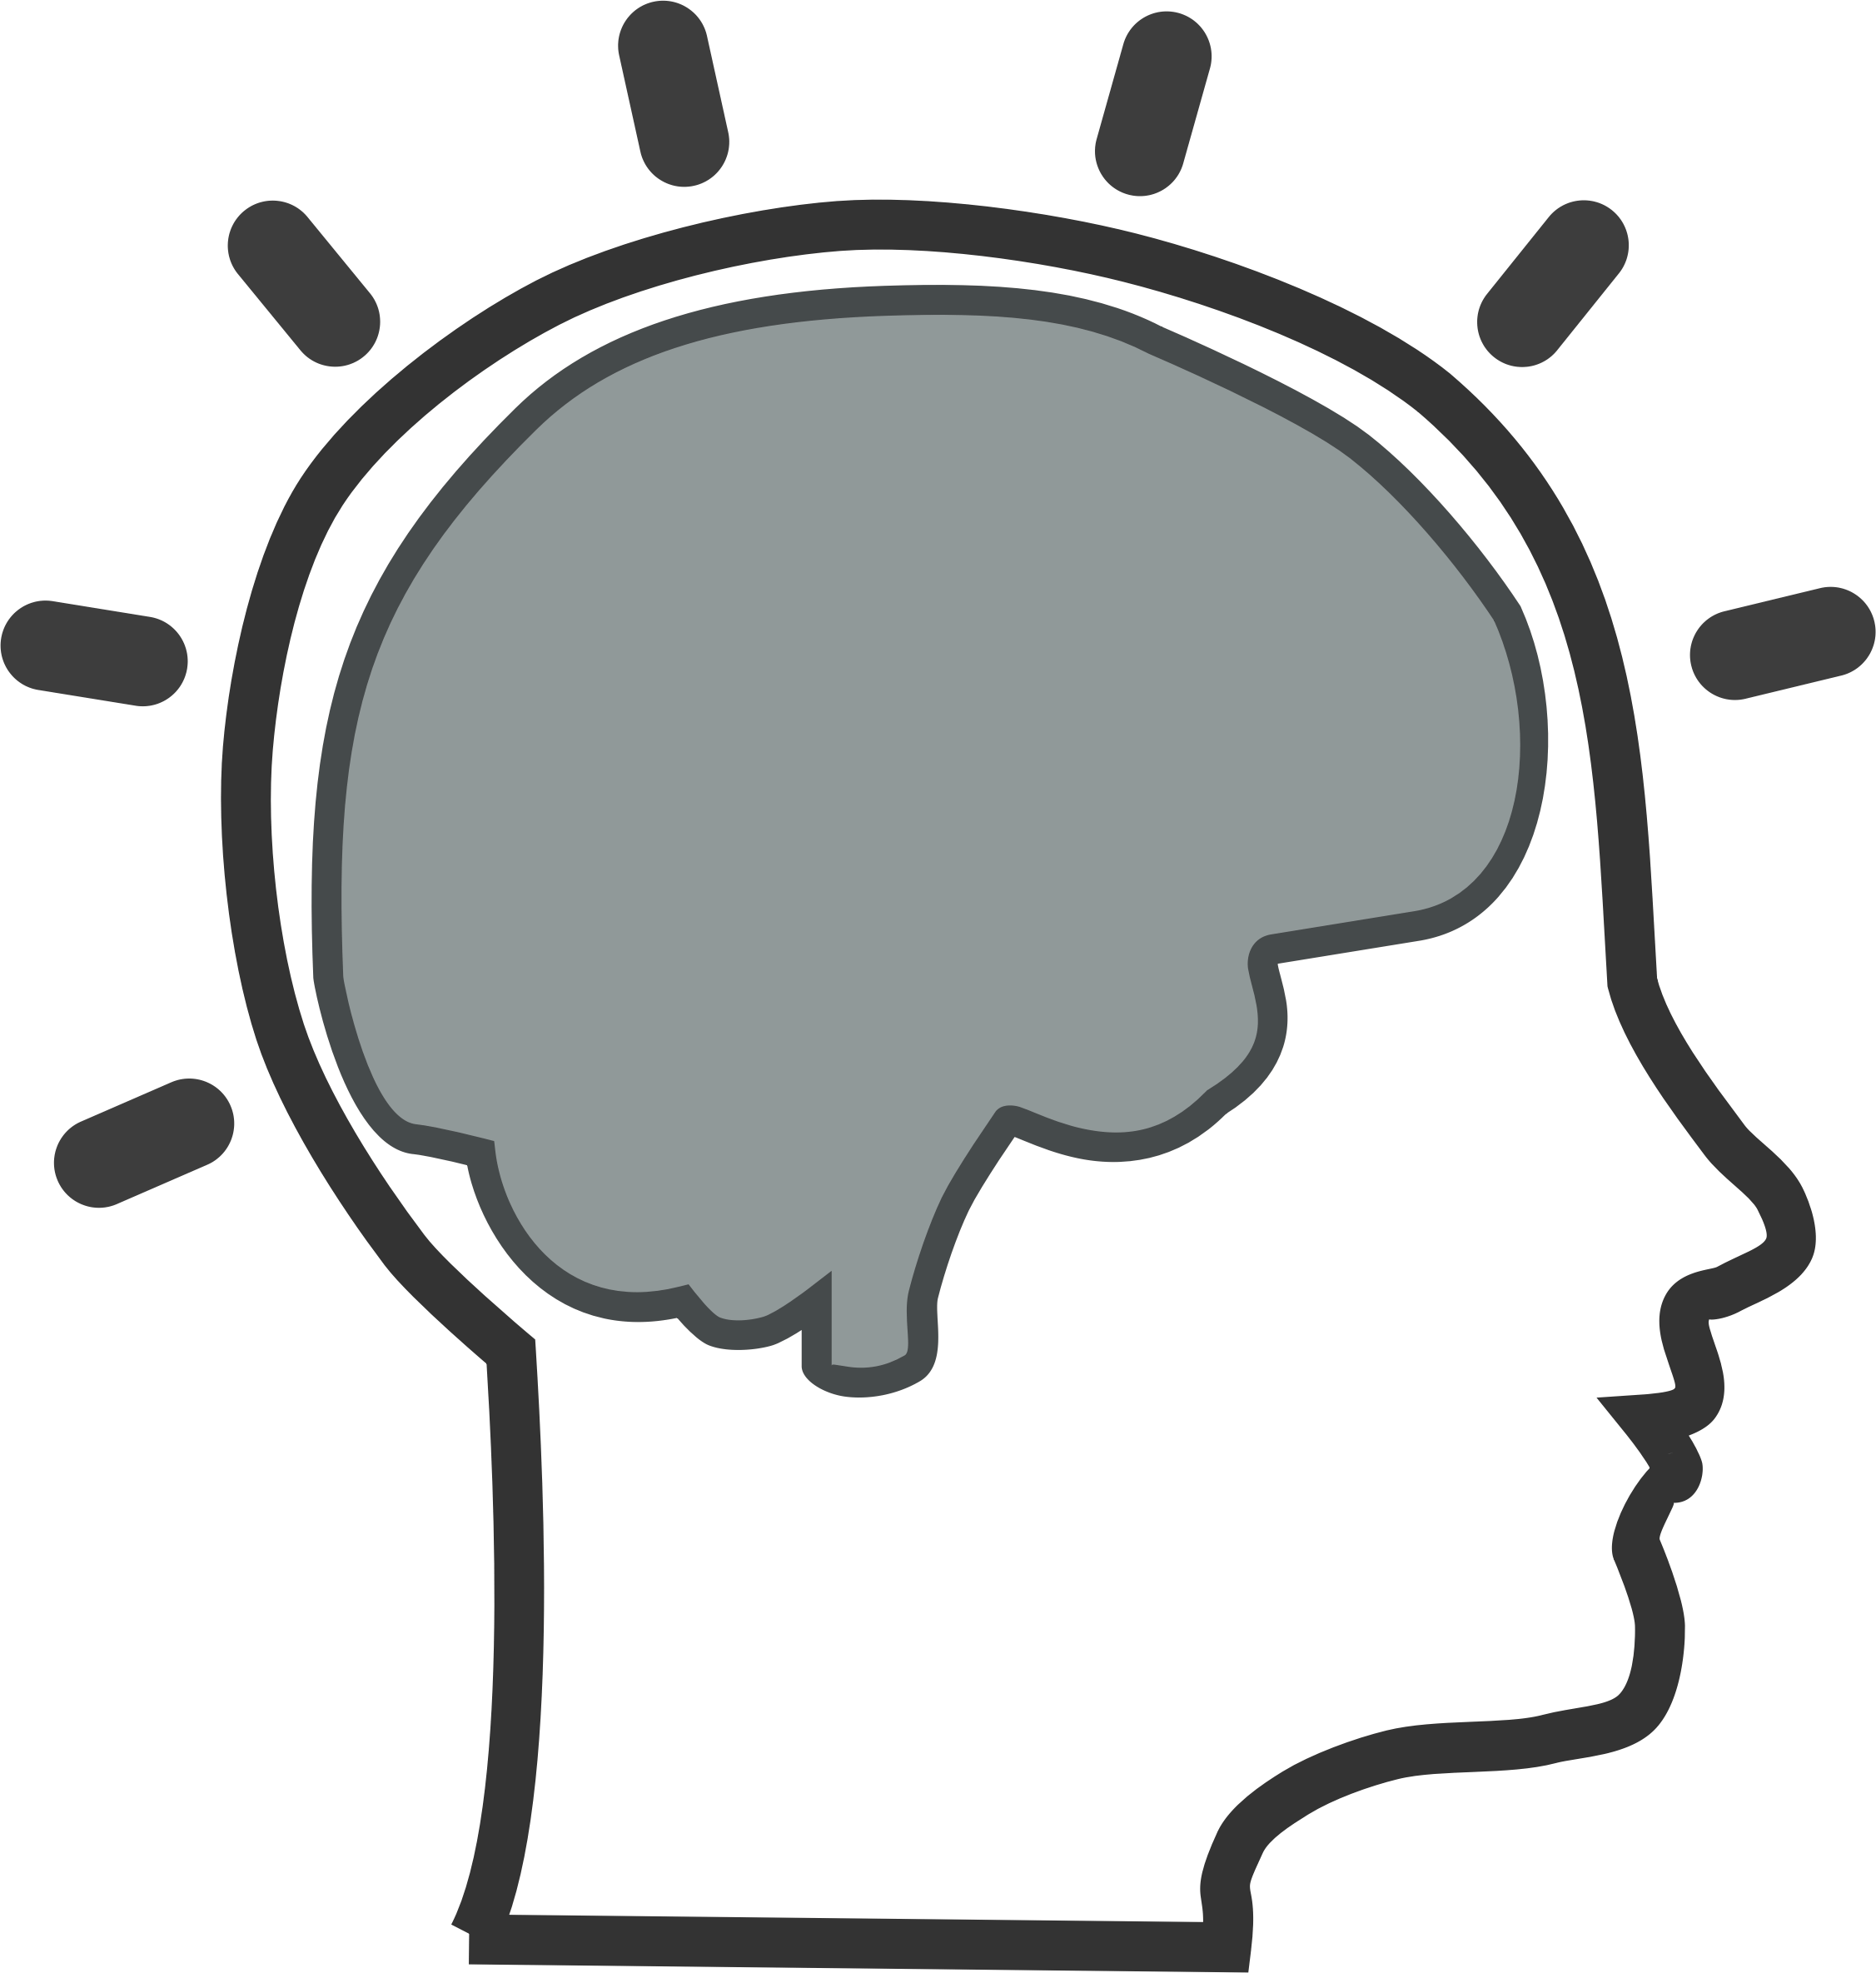 Left and right brain clipart no background.